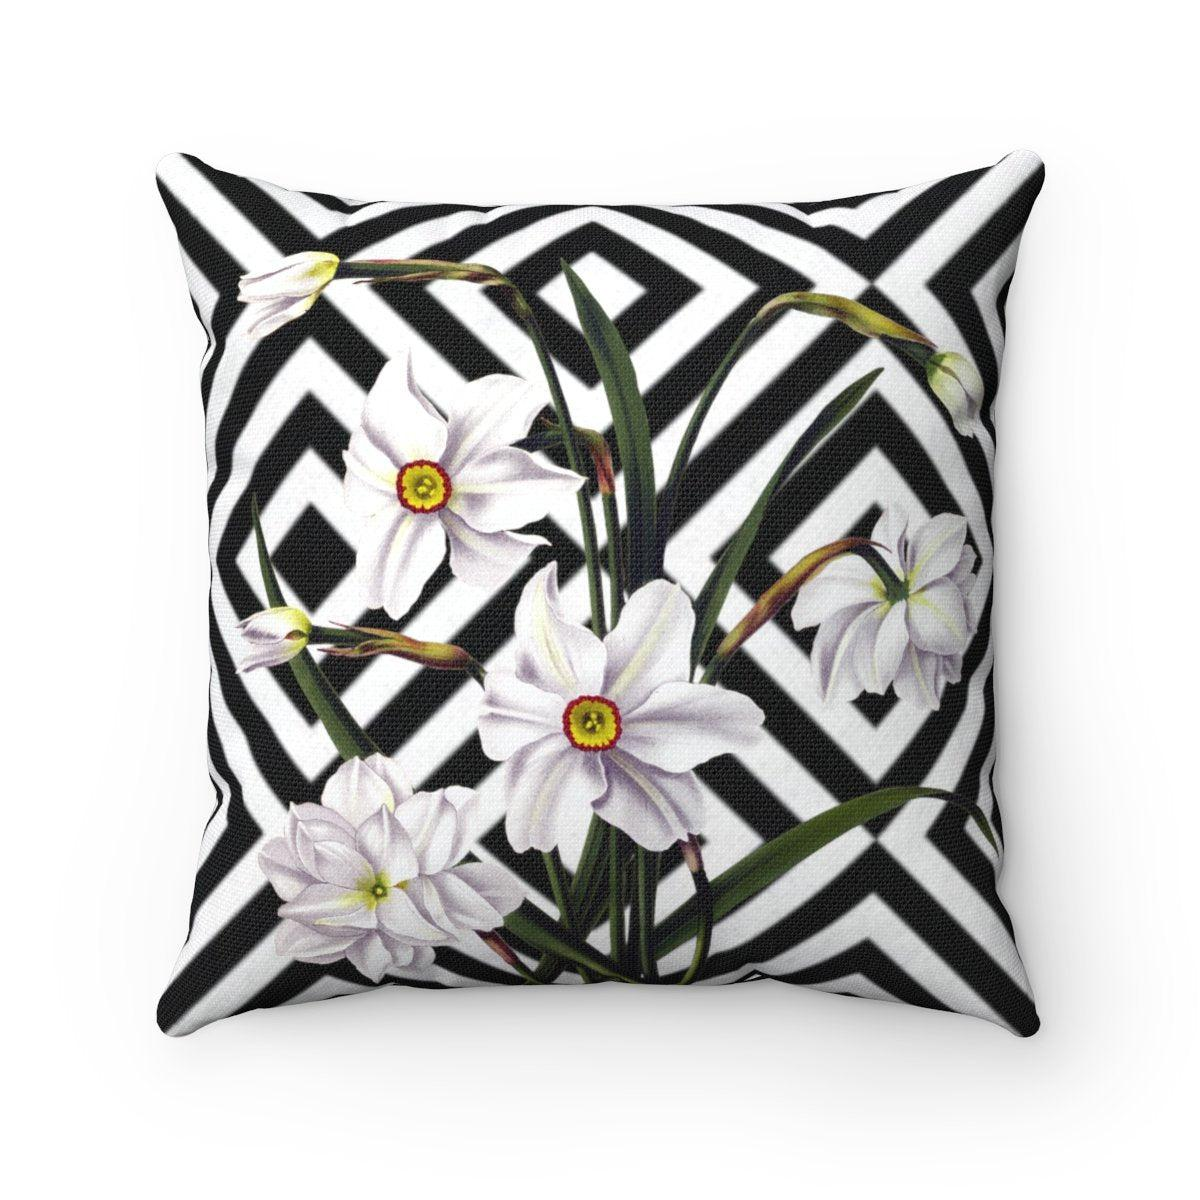 Luxury Narcissus | Floral abstract decorative cushion cover-Home Decor - Decorative Accents - Pillows & Throws - Decorative Pillows-Maison d'Elite-14x14-Très Elite